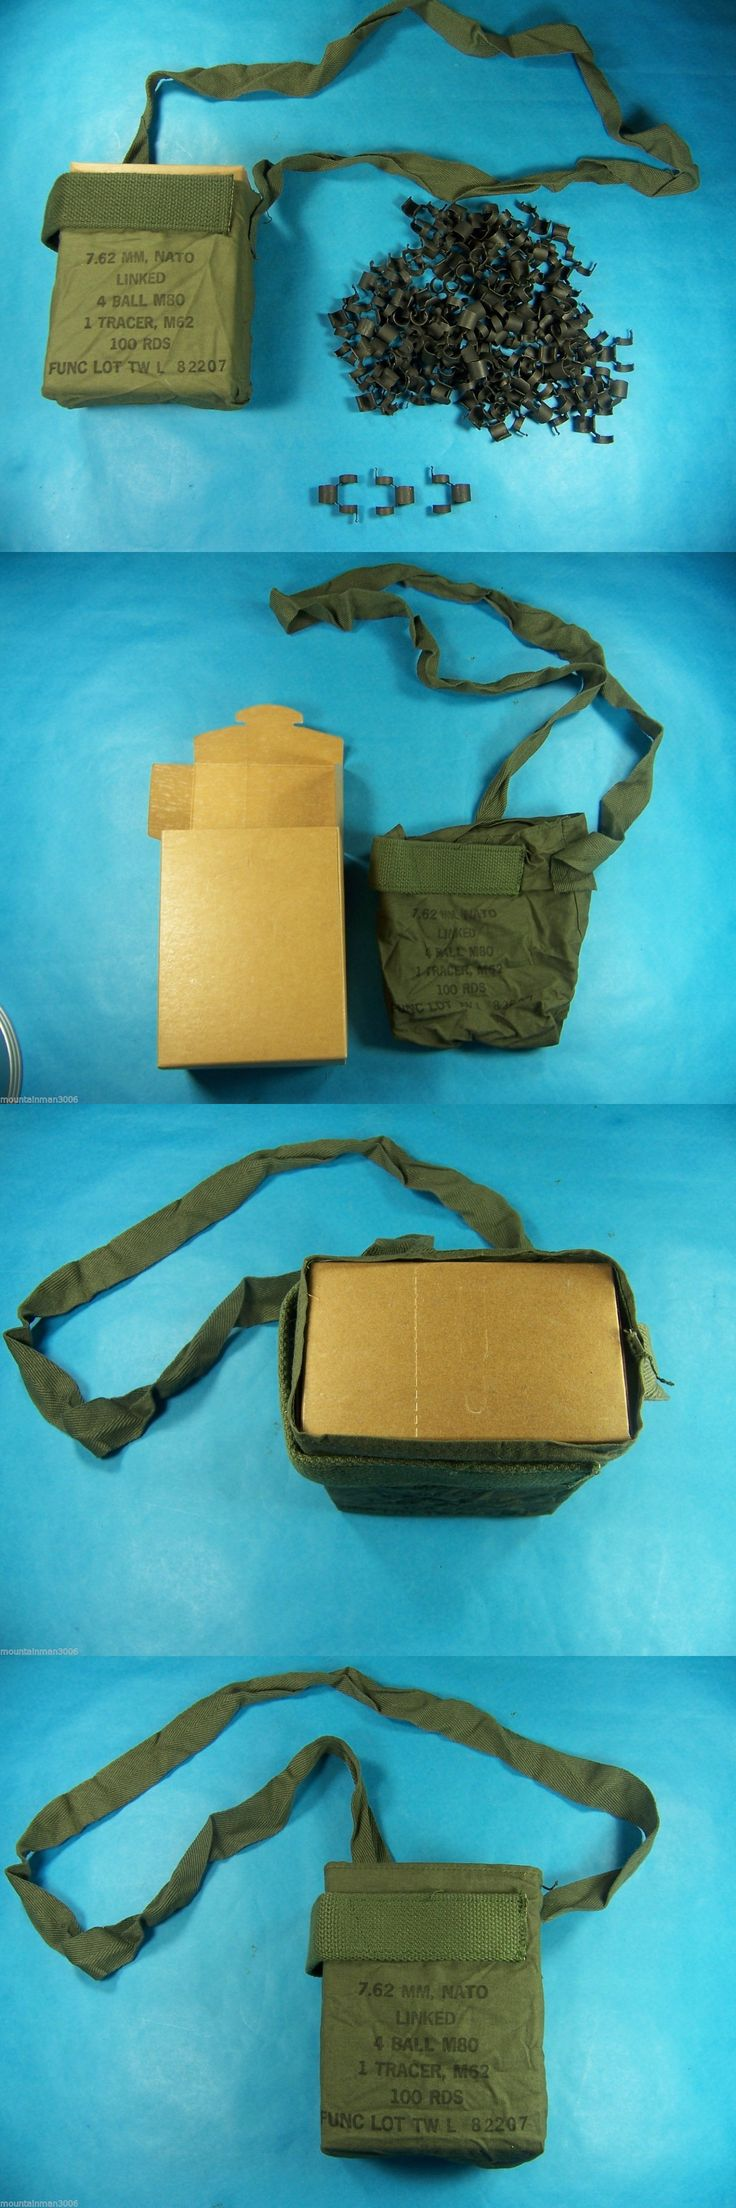 Ammunition Belts and Bandoliers 177884: Us Military M60 Bandolier, Cardboard Box 7.62Mm Nato Linked Belt Repack Kit -> BUY IT NOW ONLY: $30.95 on eBay!